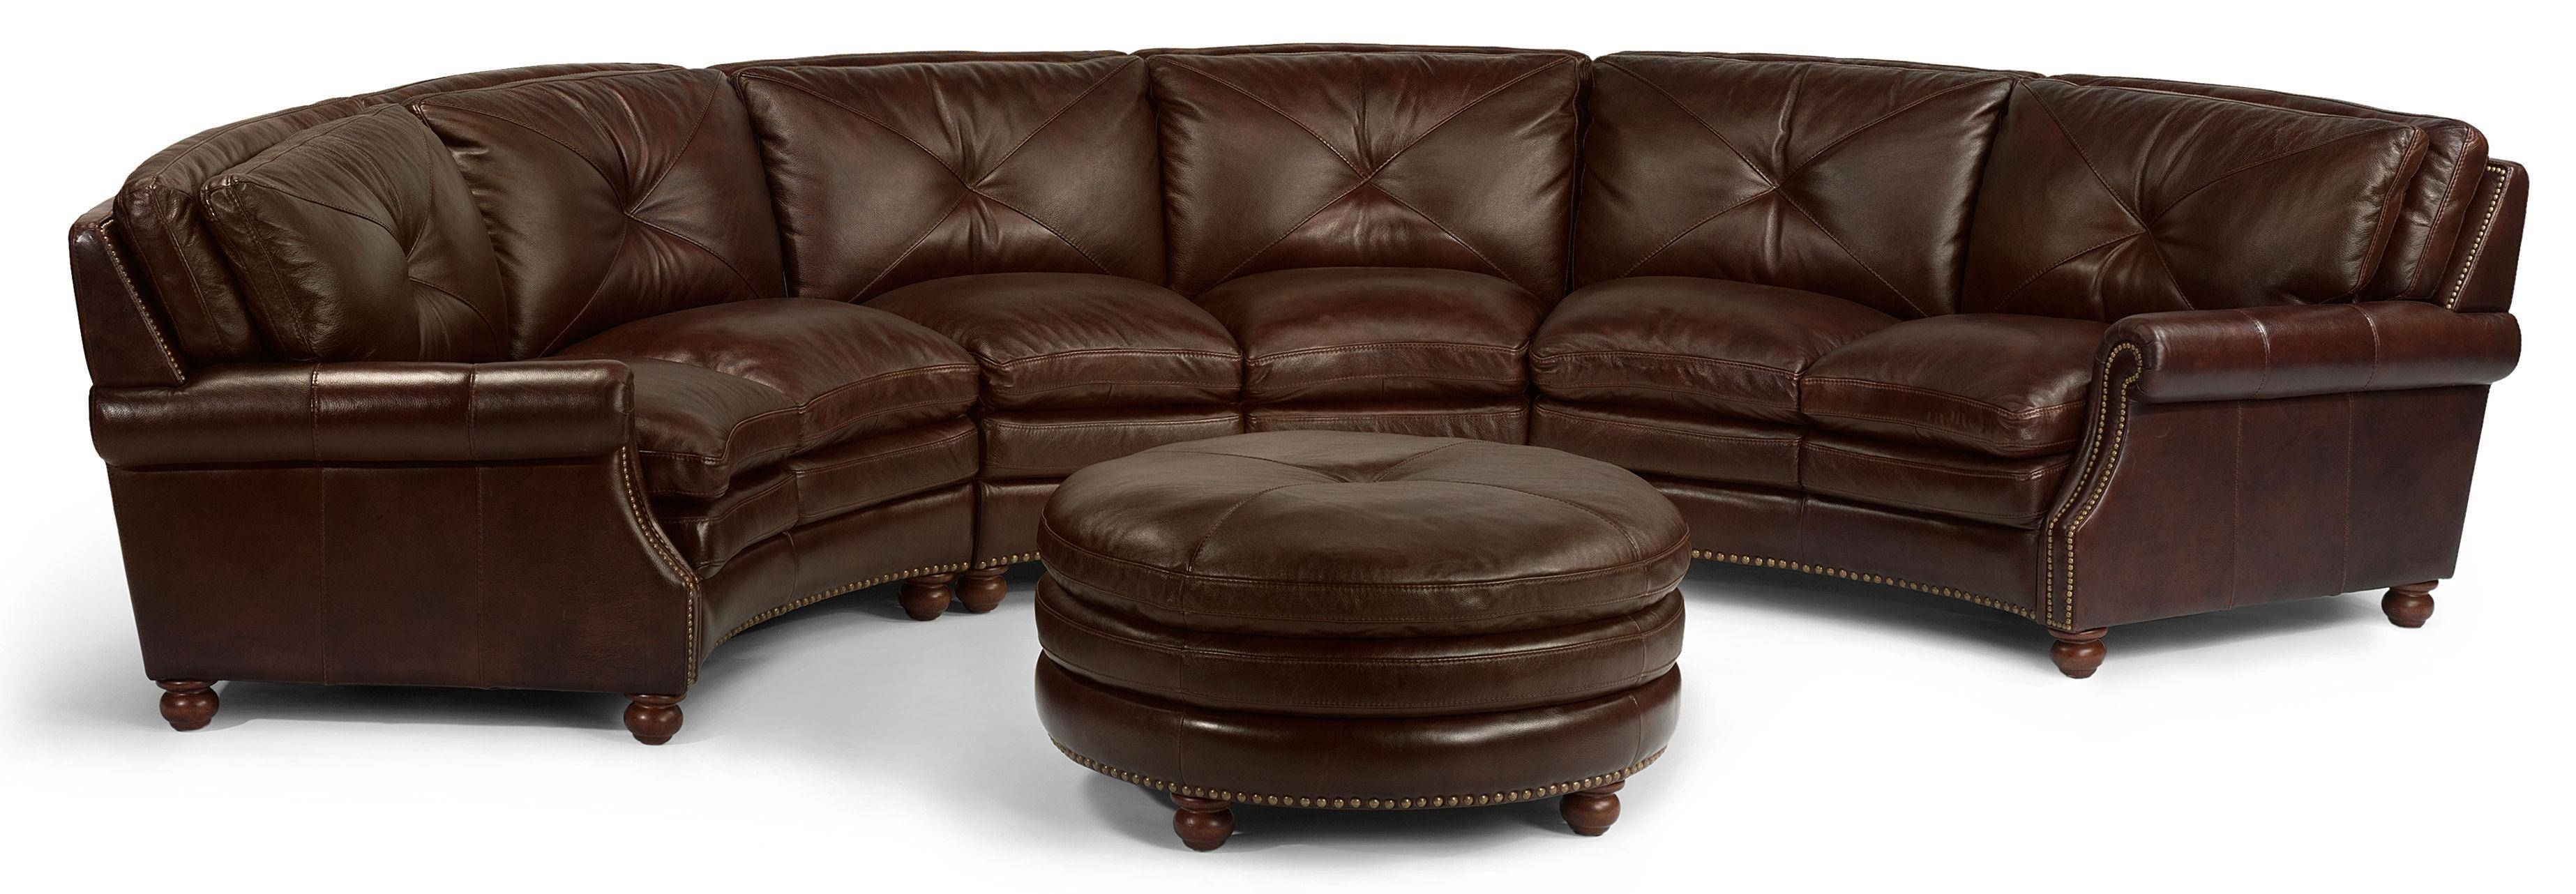 Lovely Half Circle Sofa 30 For Modern Sofa Inspiration With Half in Half Circle Sectional Sofas (Image 7 of 15)